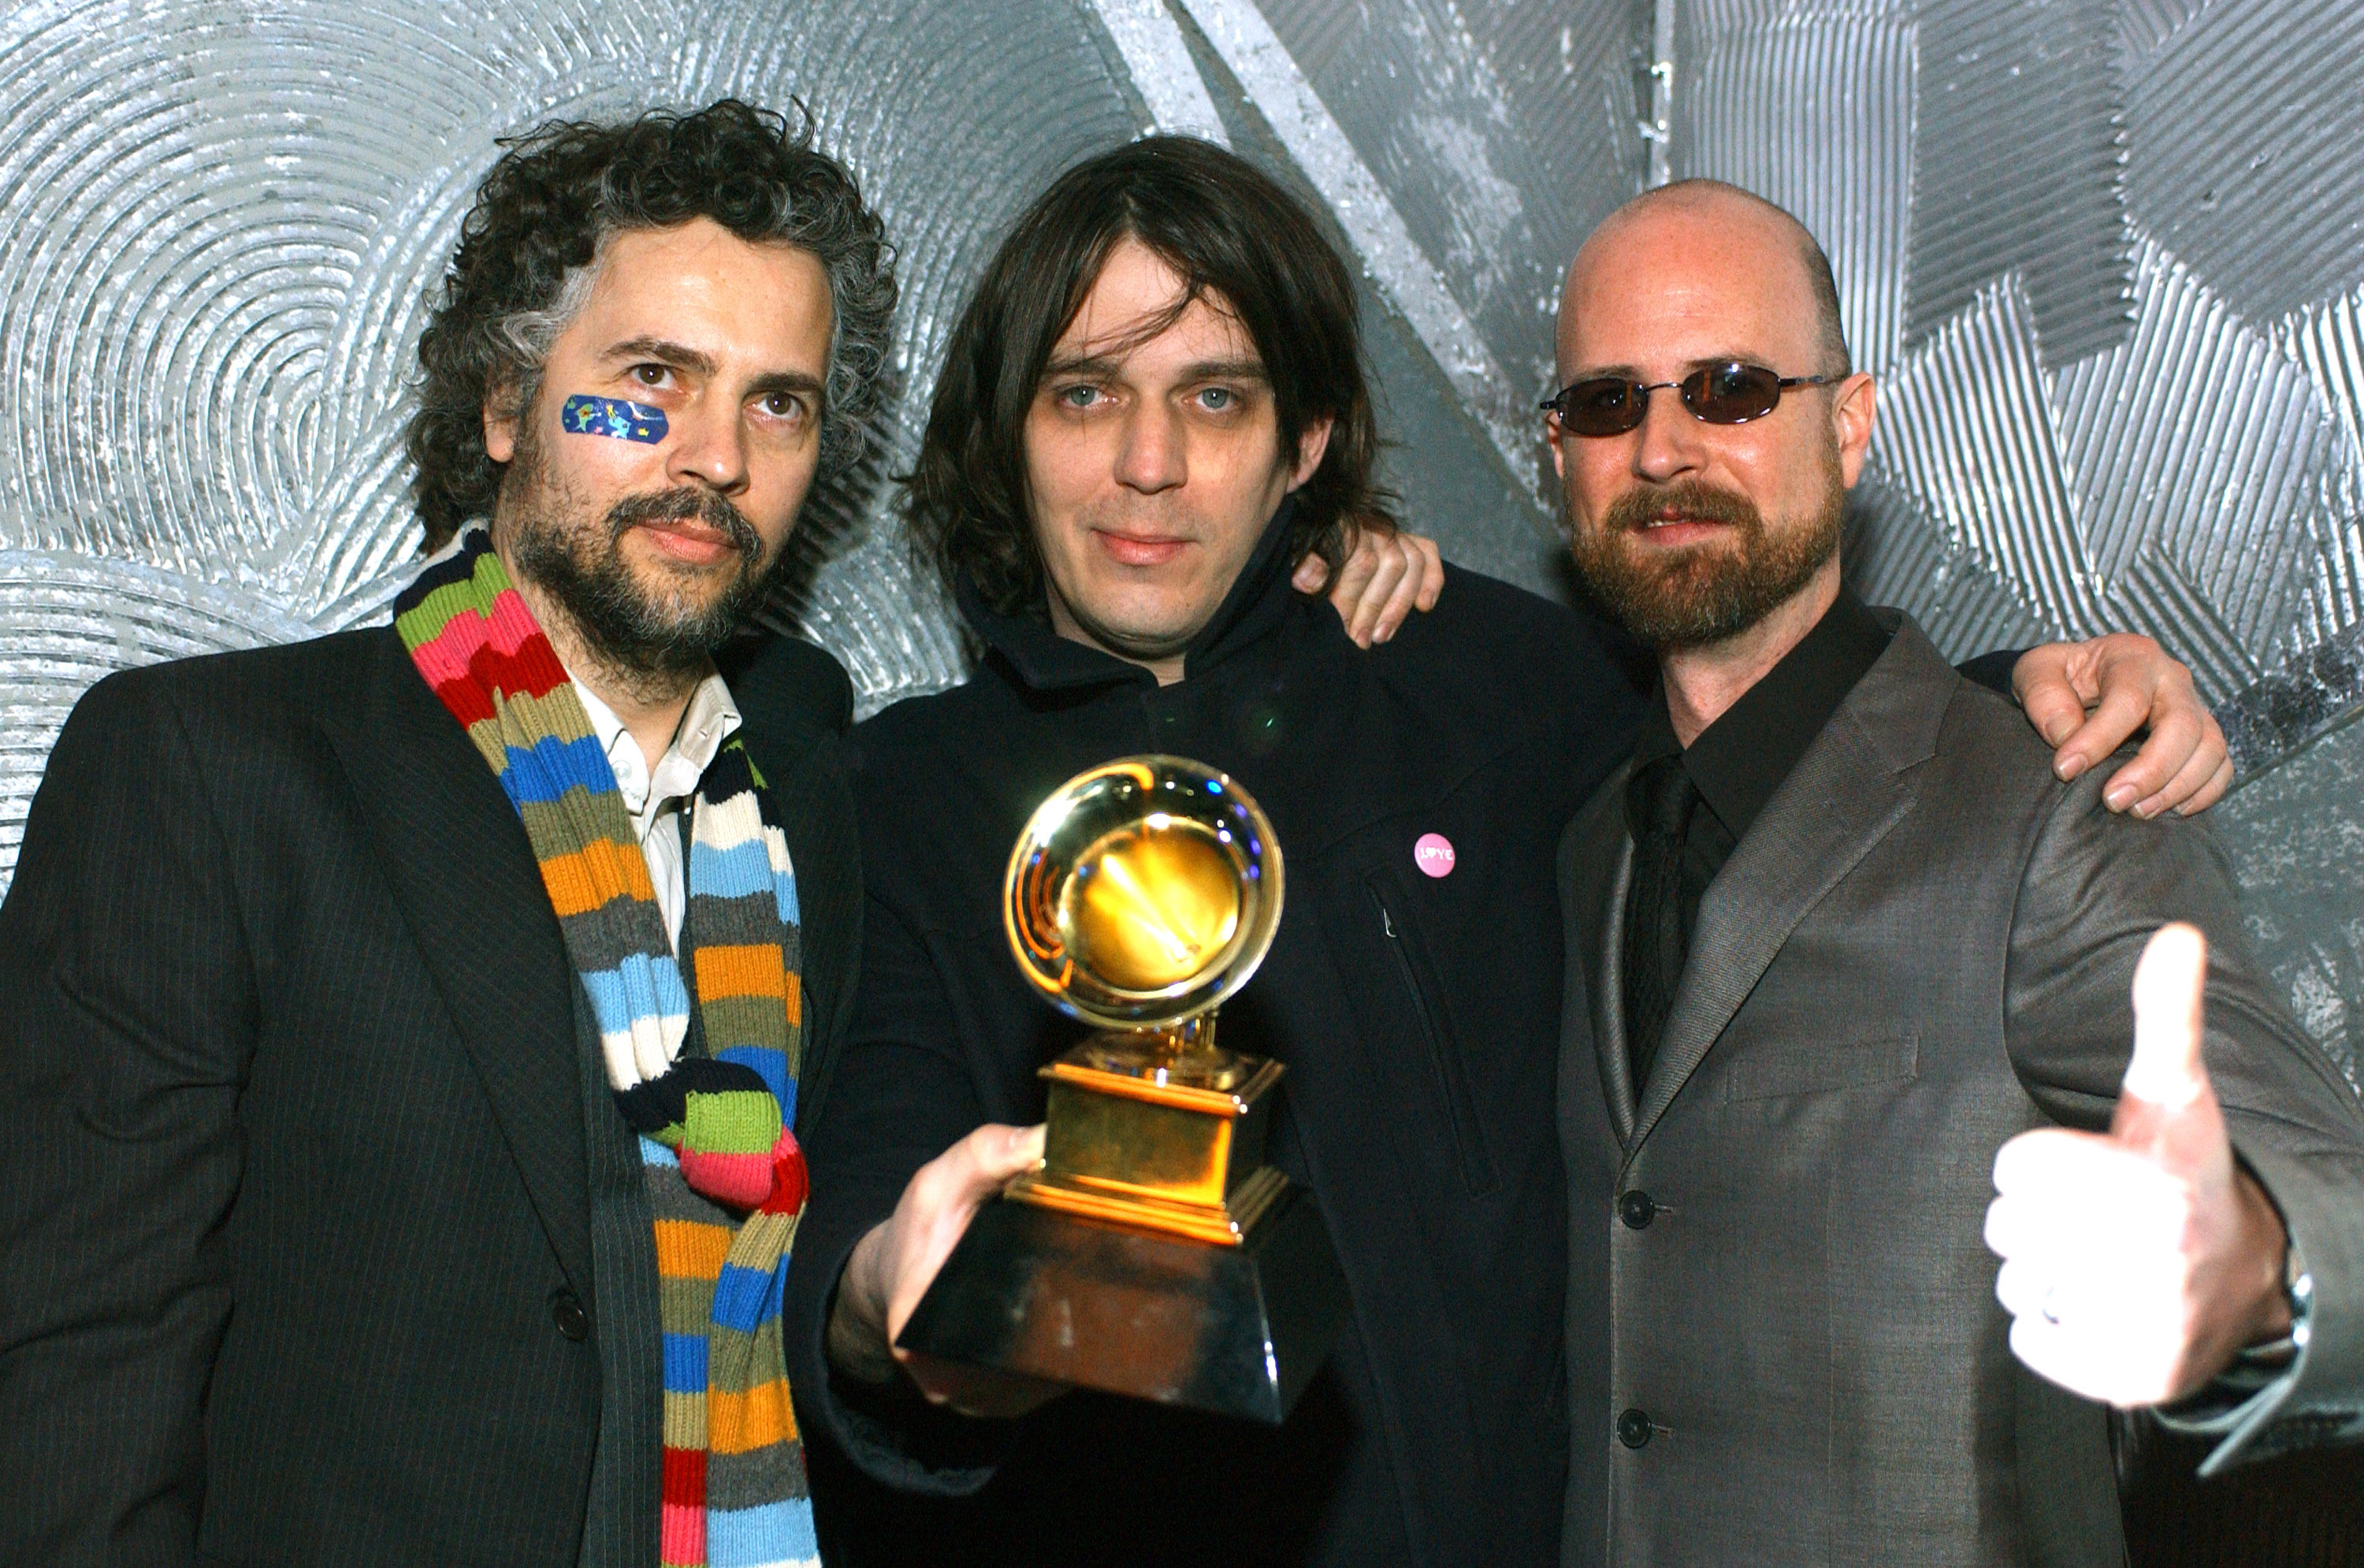 The Flaming Lips at the 45th GRAMMYs in 2003